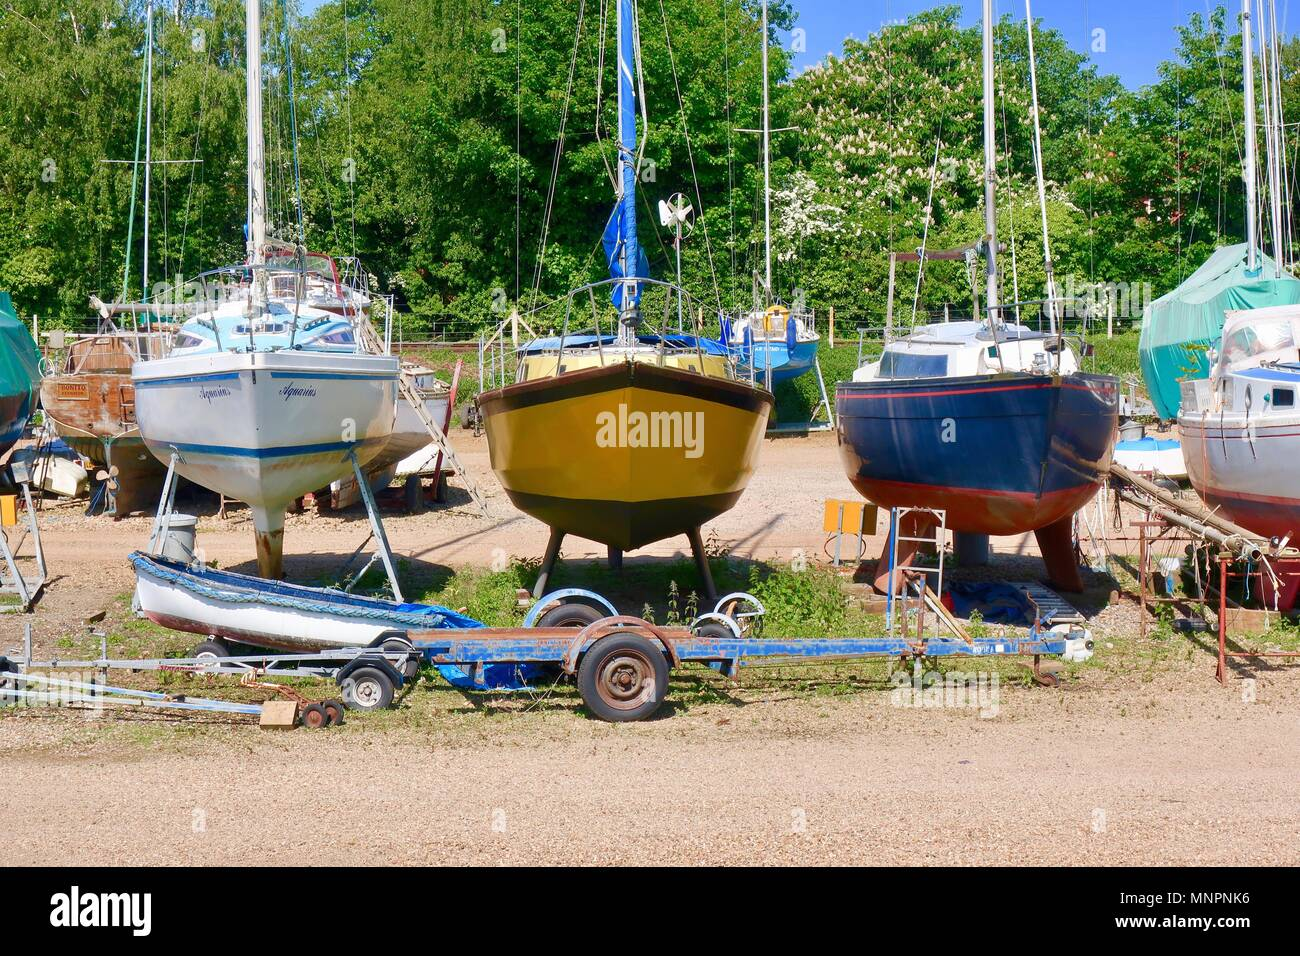 Eversons boatyard by the River Deben, Woodbridge, Suffolk. May 2018. - Stock Image